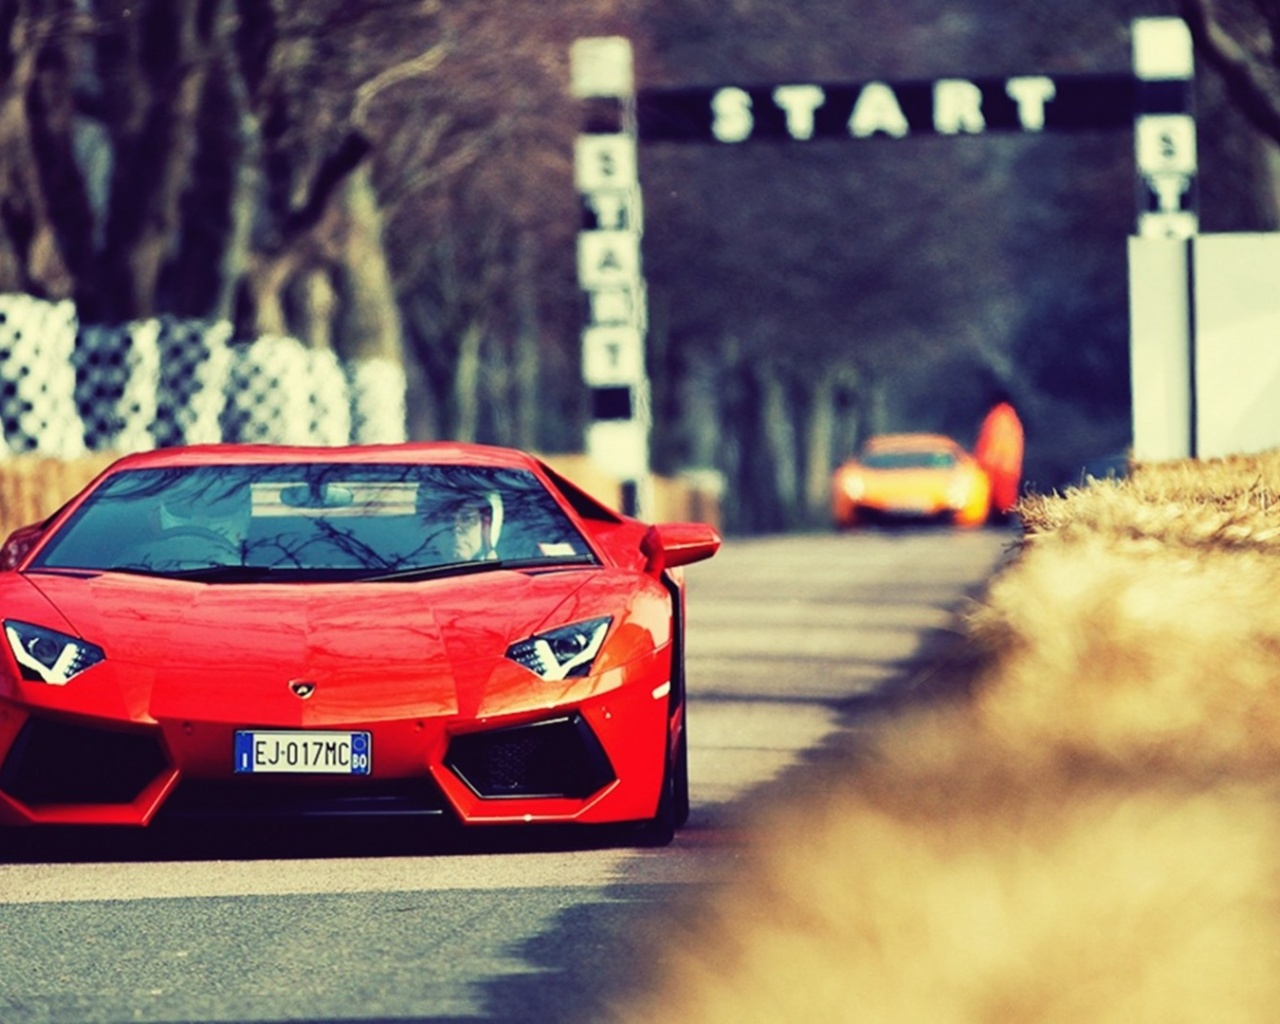 Most Inspiring Wallpaper Mac Lamborghini - orange-lamborghini-aventador-on-the-track_wallpapers_34505_1280x1024  2018_711797.jpg